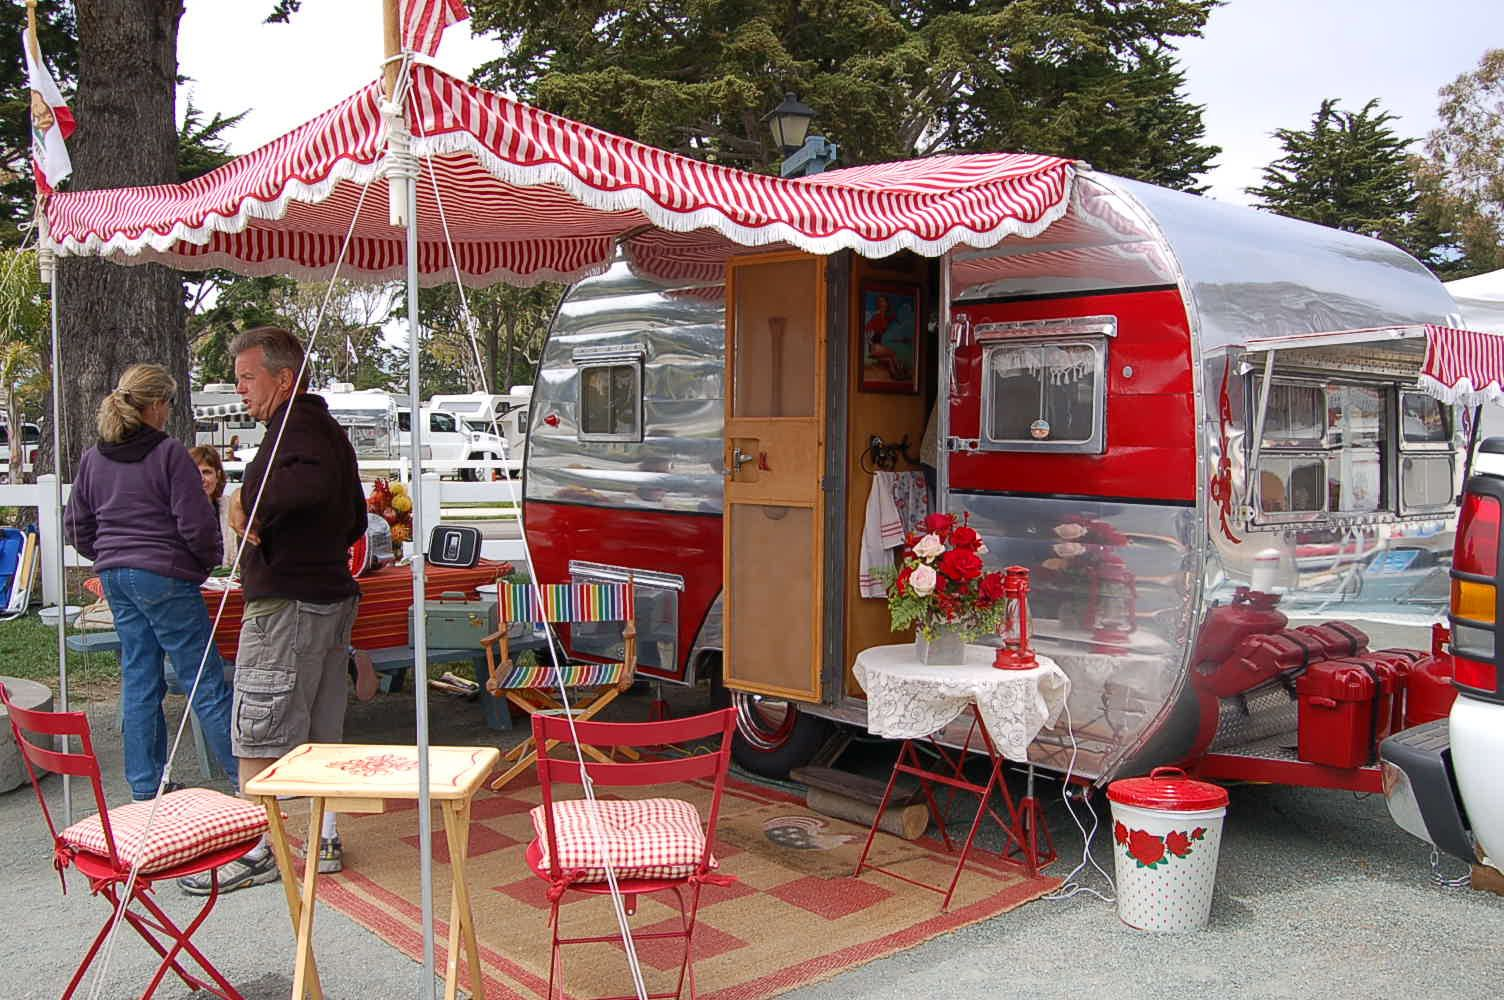 Red And White Peppermint Striped Side Awning On A 1954 Dalton